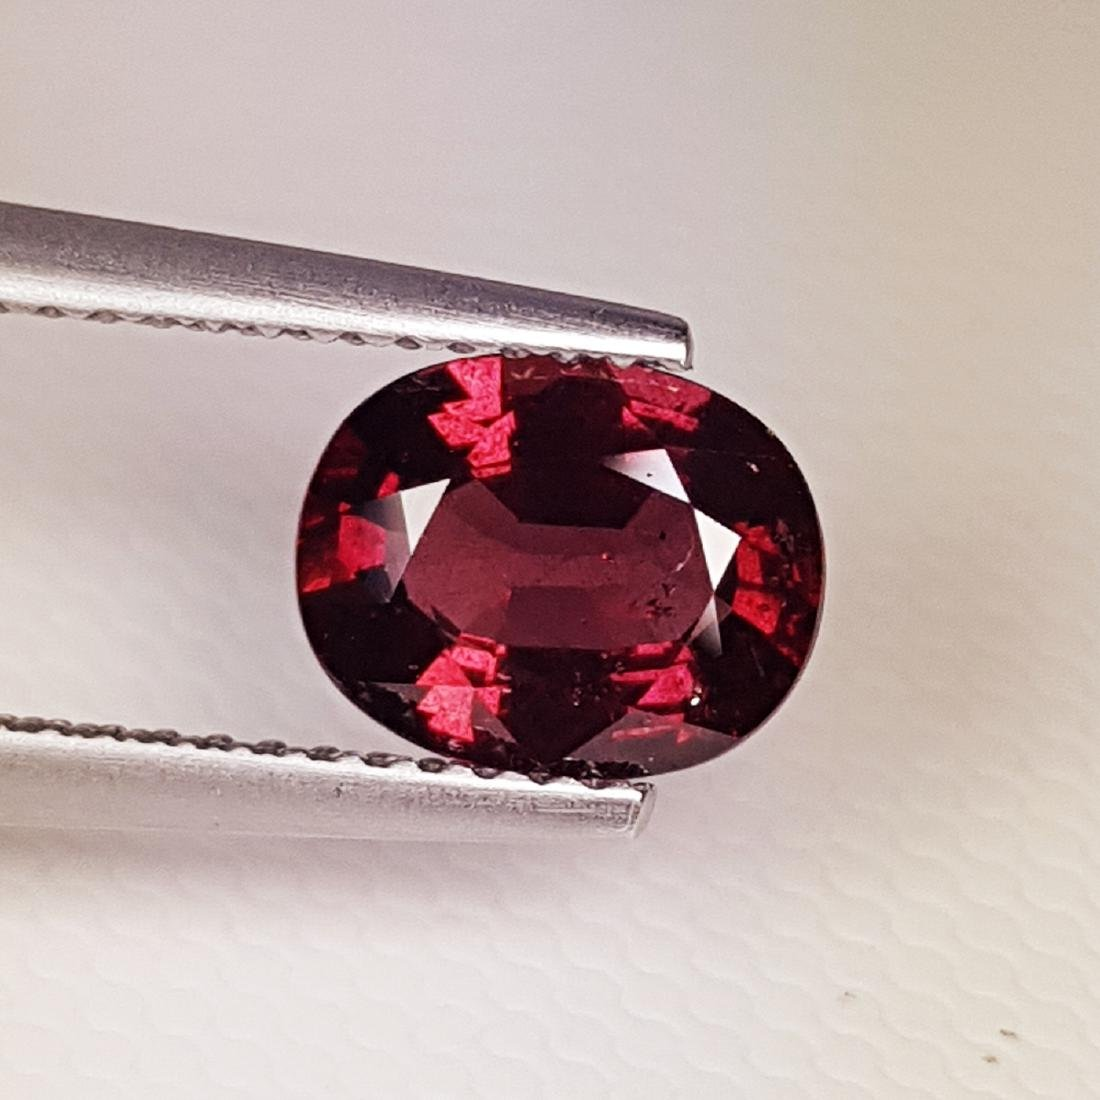 Amazing Oval Cut Natural Rhodolite Garnet - 1.88 ct - 2